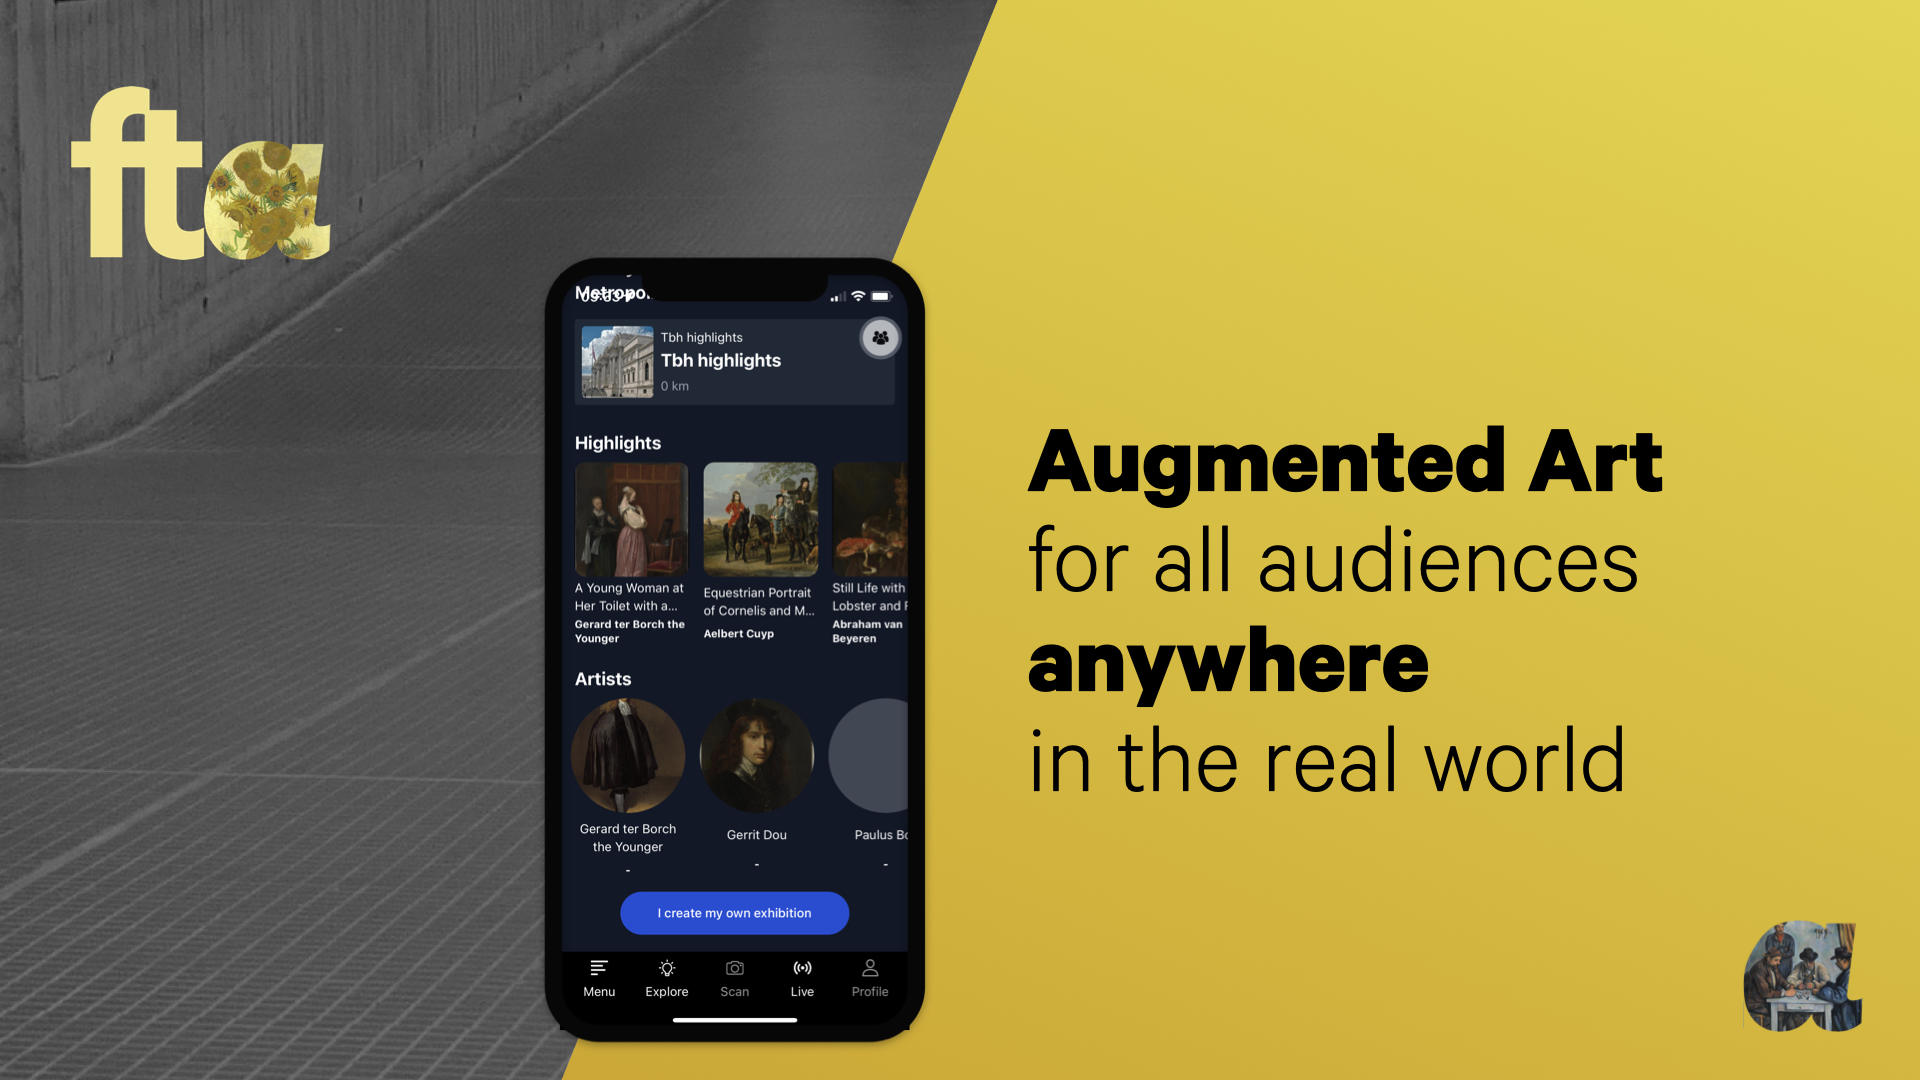 Augmented Art for all audiences anywhere in the real world